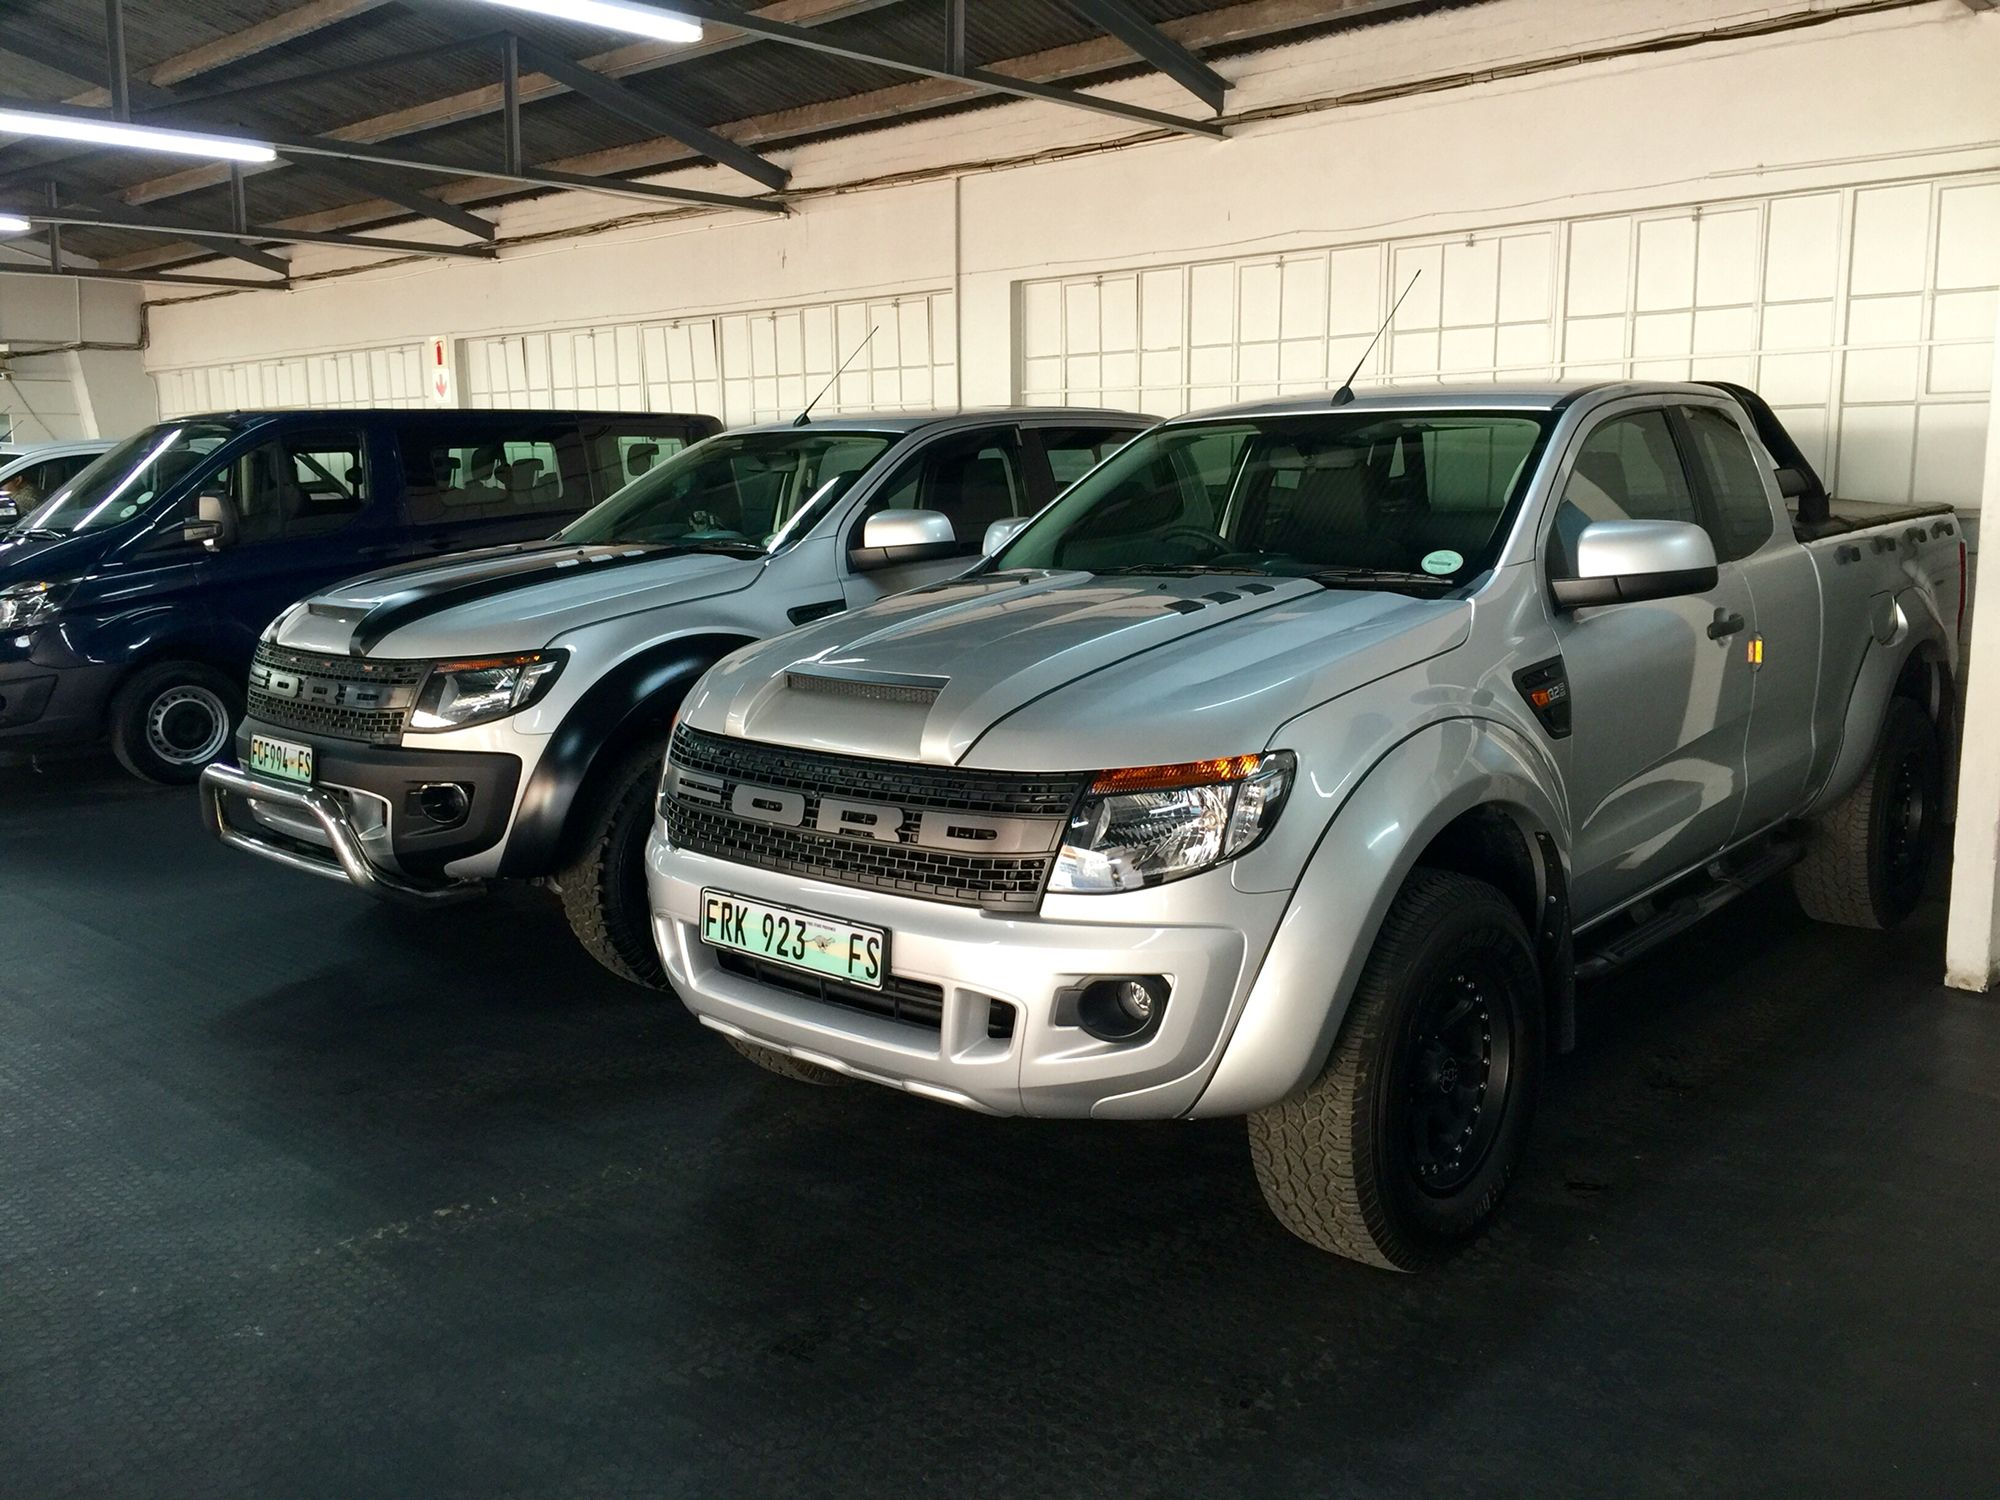 ford ranger raptor editions ford rangers pinterest. Black Bedroom Furniture Sets. Home Design Ideas